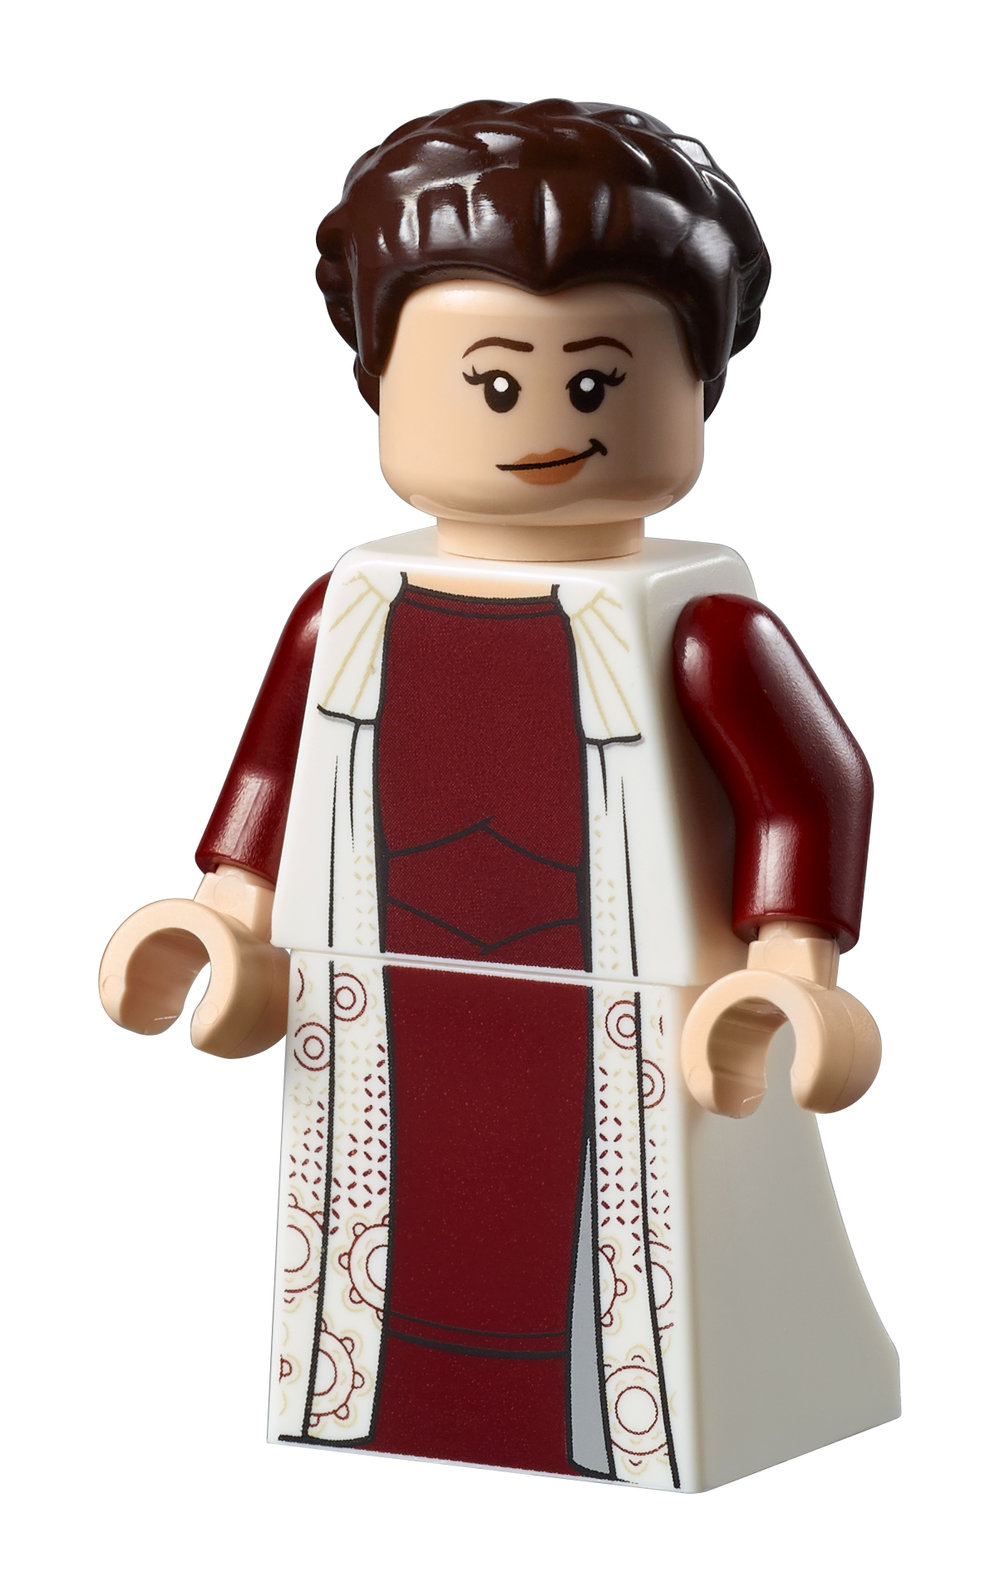 75222_Top_Panel_Minifigure_10.jpg